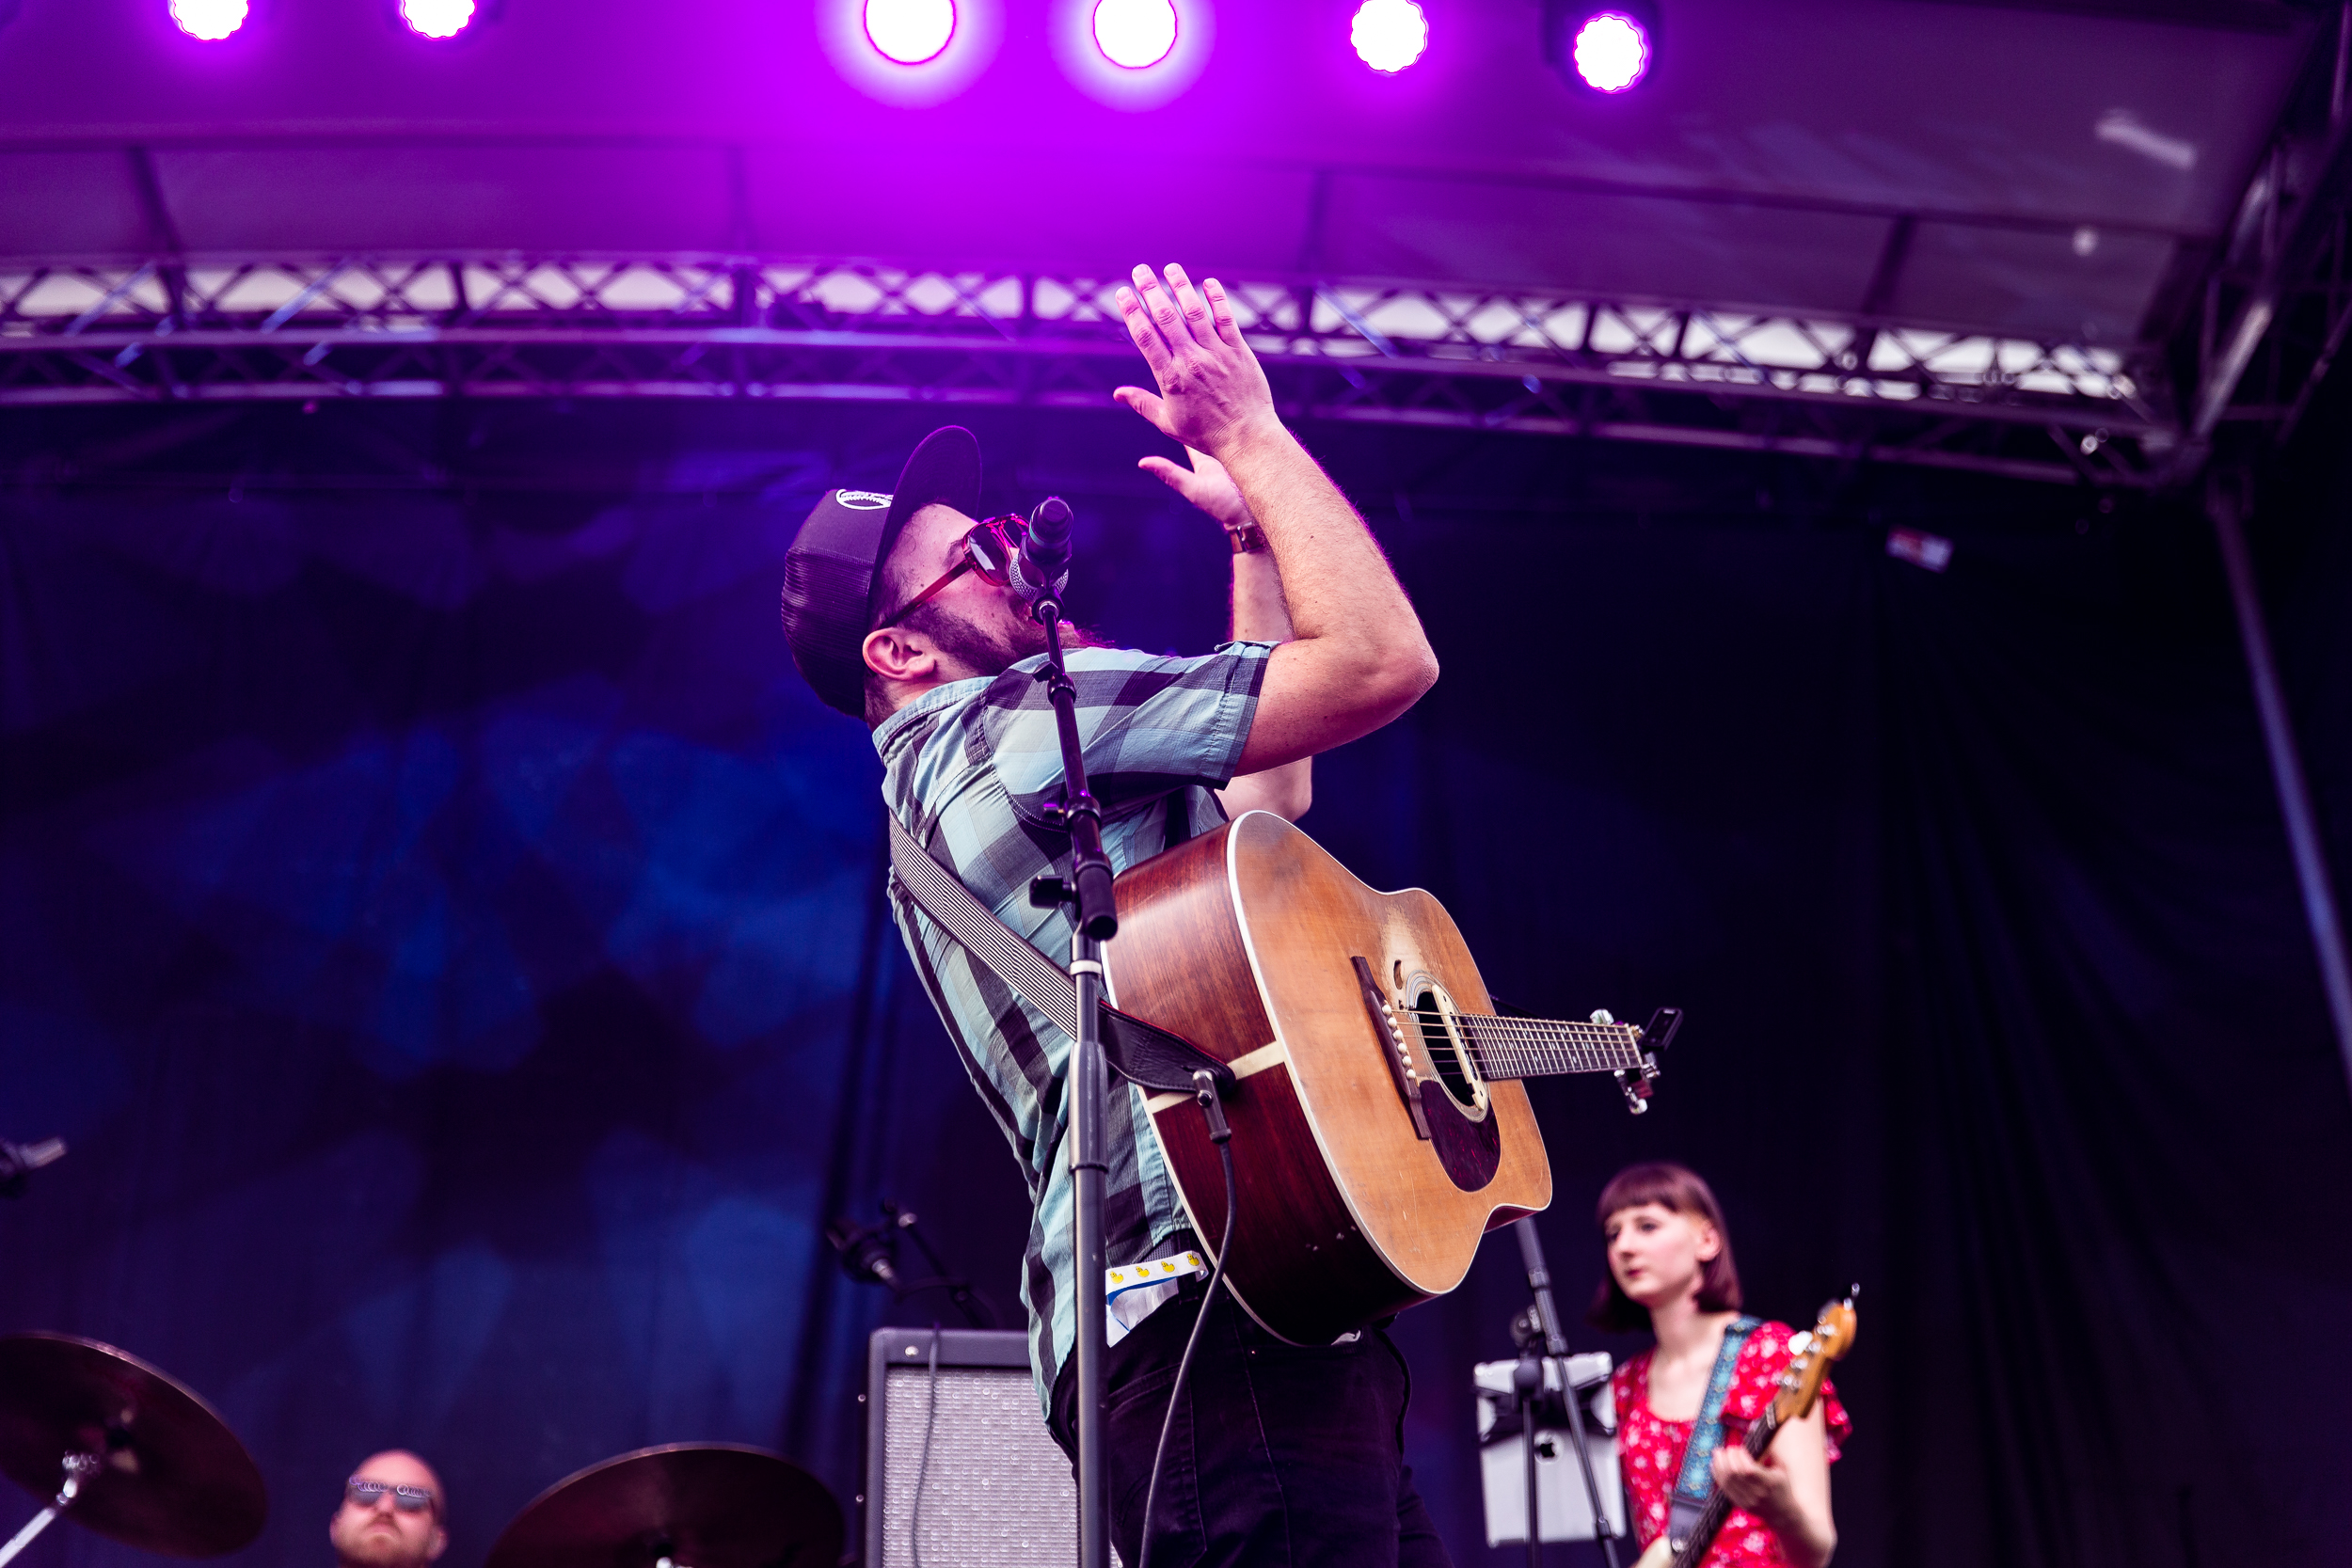 Dustbowl Revival at Kingman Island Bluegrass and Folk Festival (Photo by Mauricio Castro /  @themauricio )